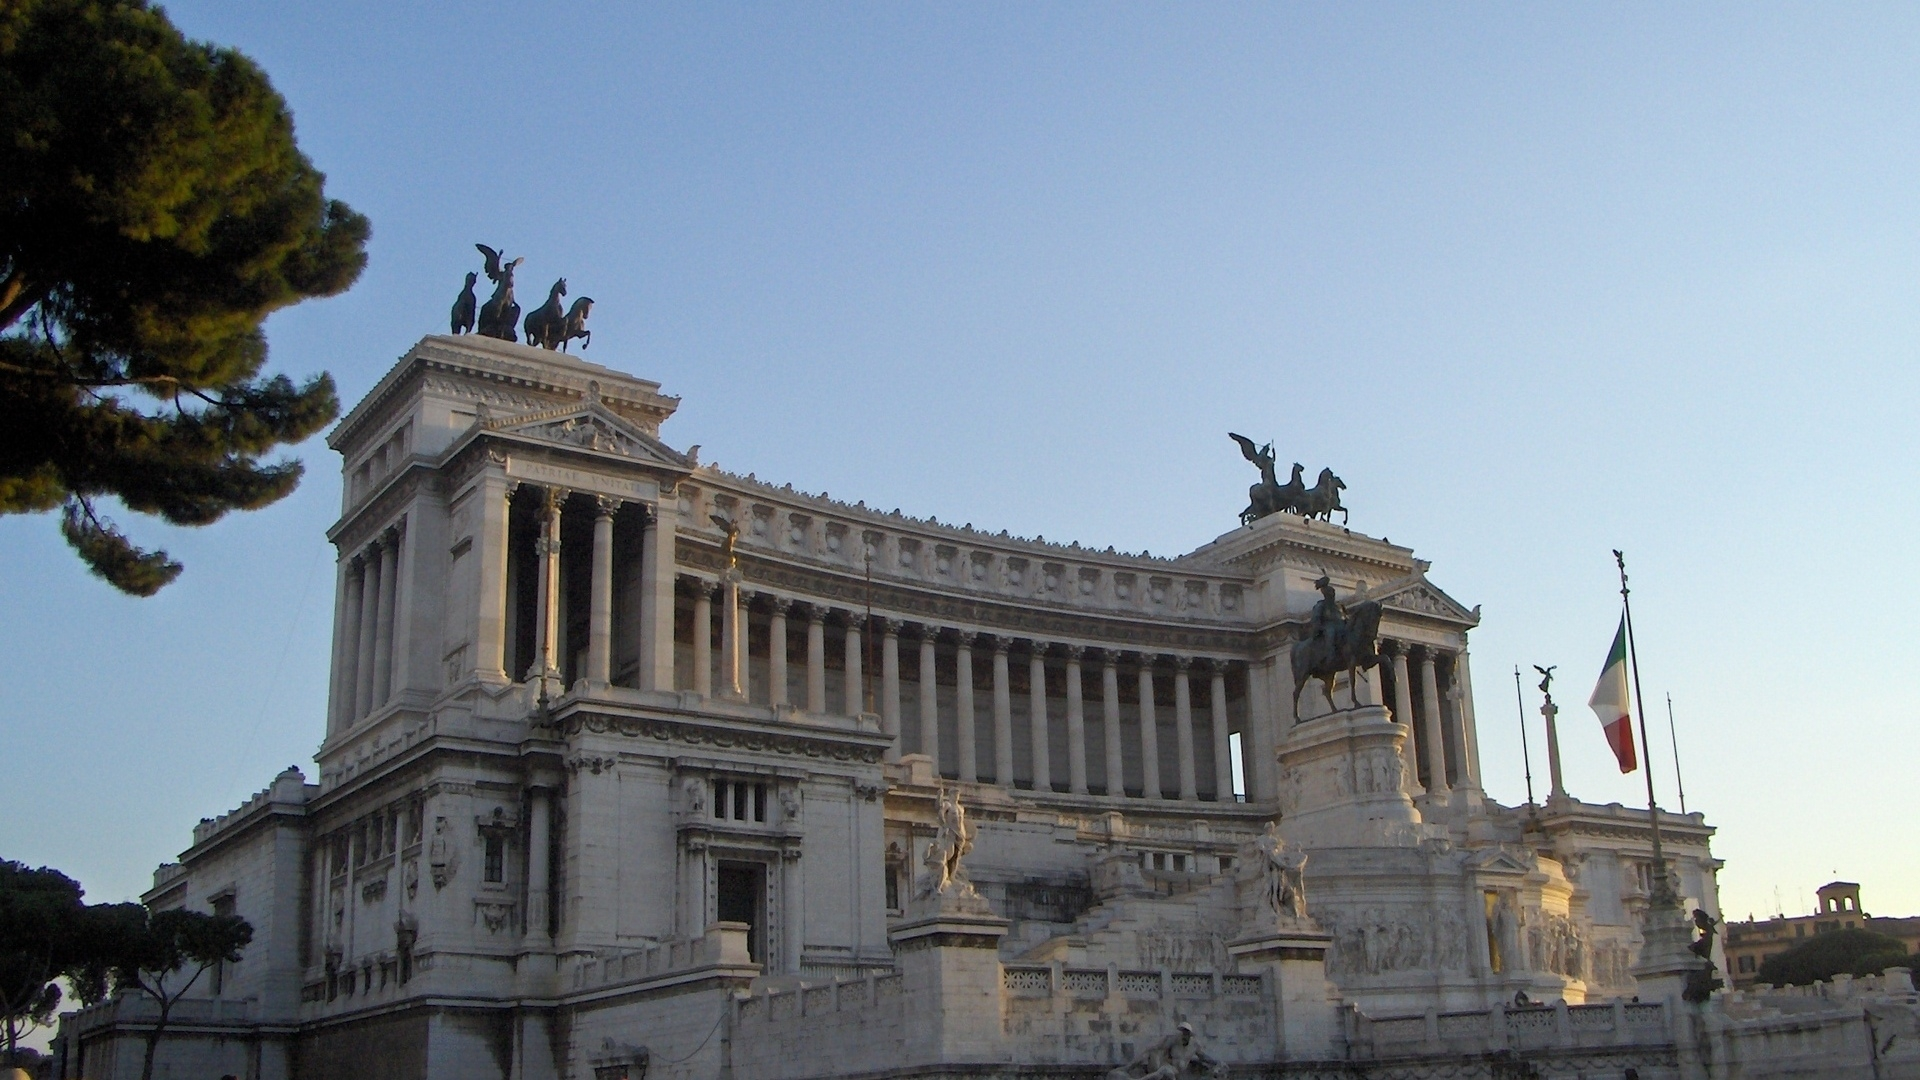 Parliament of Rome for 1920 x 1080 HDTV 1080p resolution